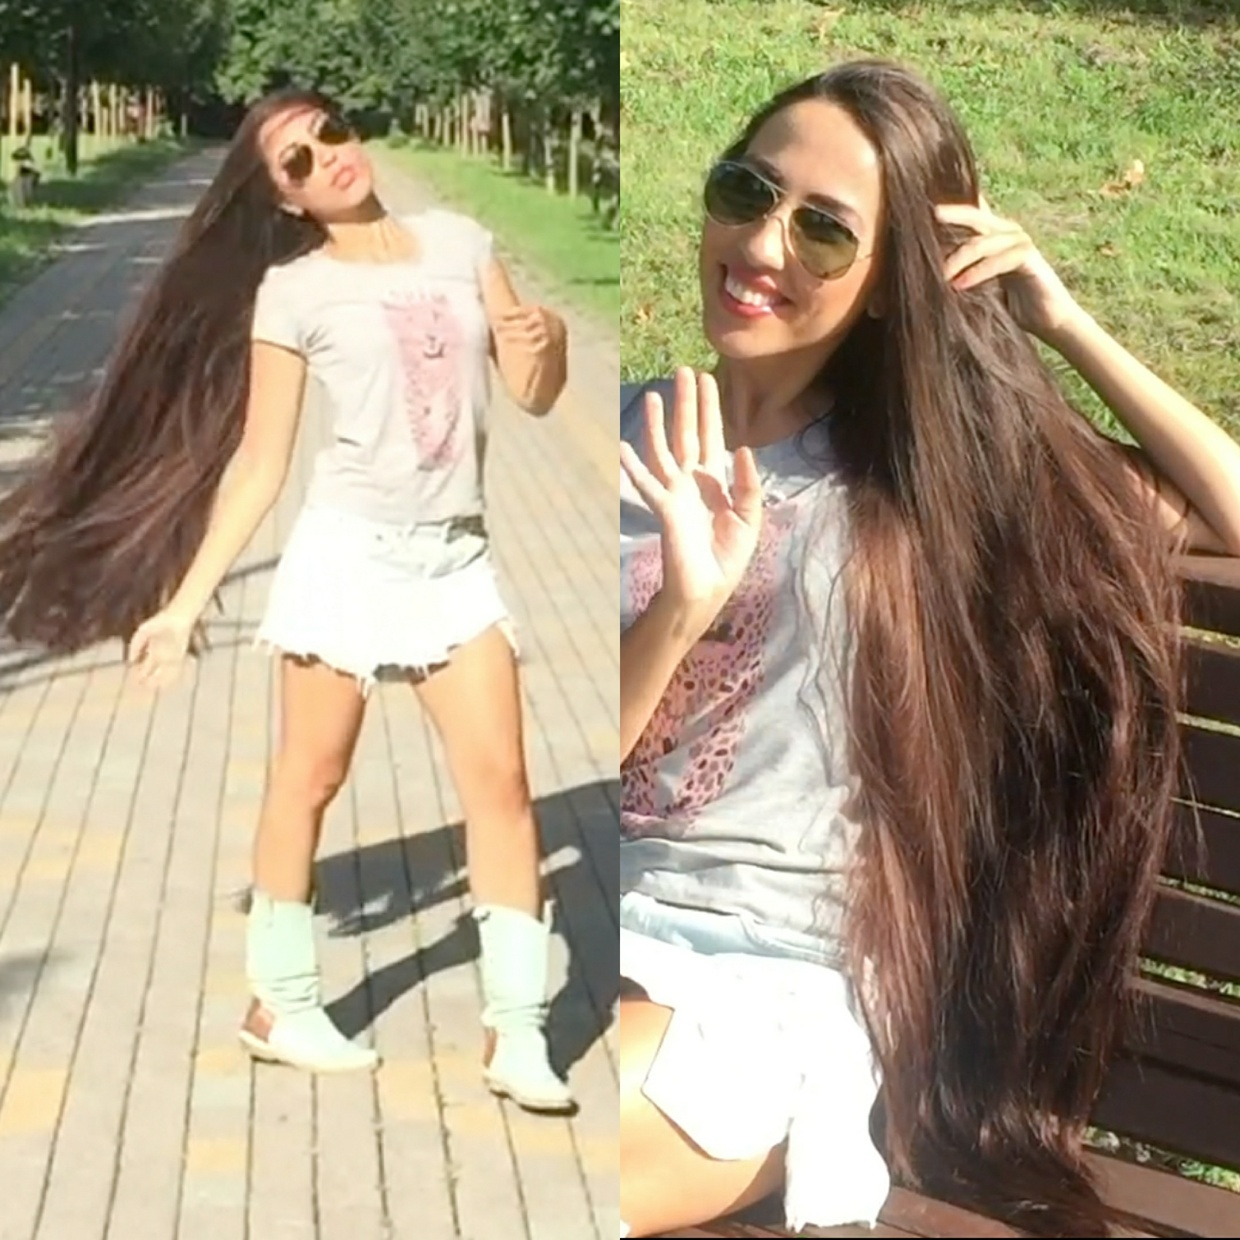 VIDEO - A long hair trip in the park